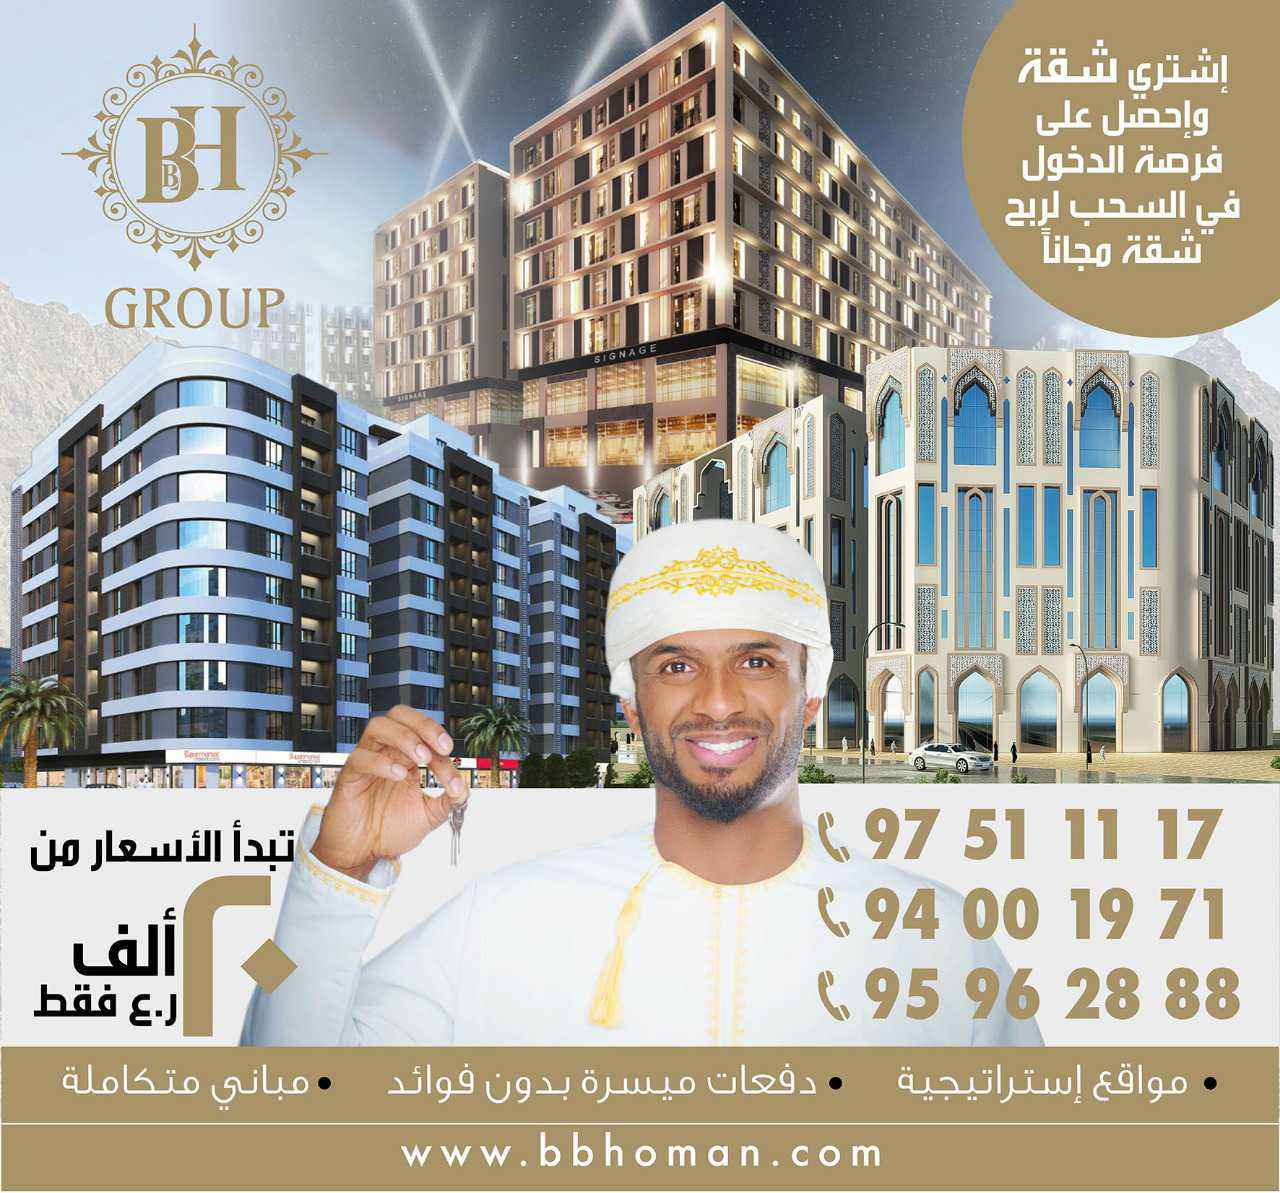 Real Estate Investment Company in Oman | BBH Group Oman